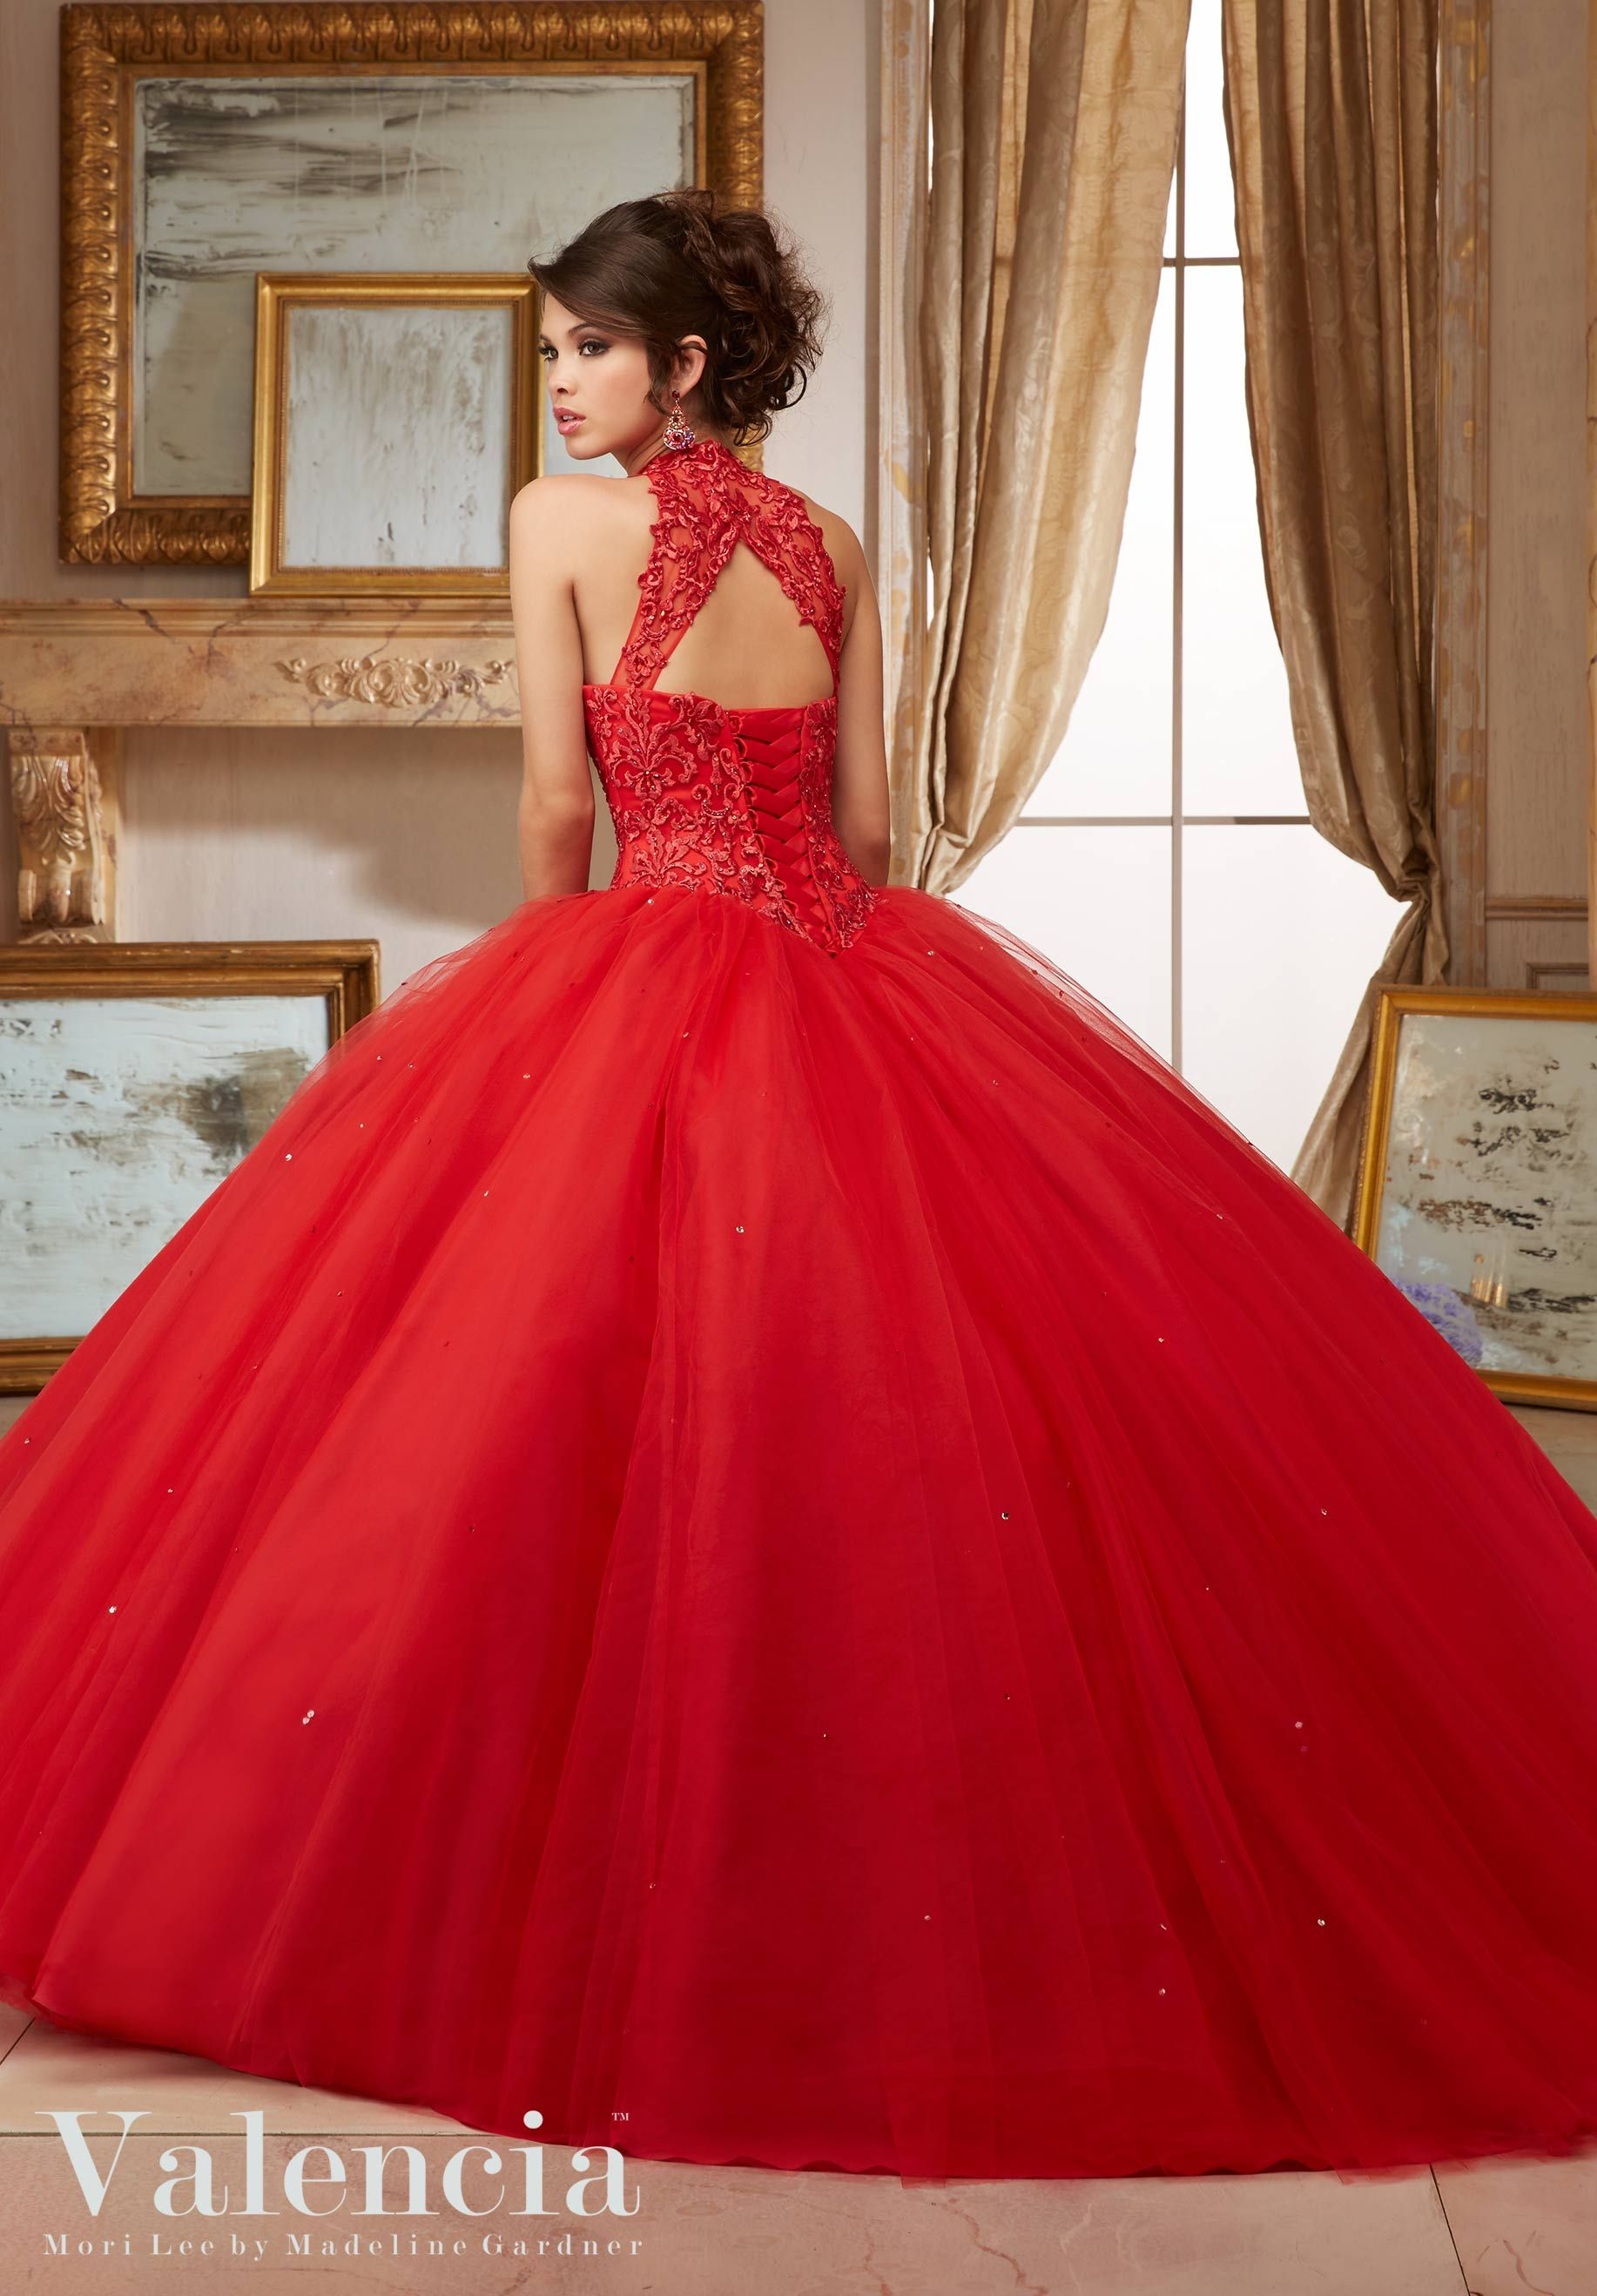 Tulle Ball Gown Quinceanera Dress Morilee Red Quinceanera Dresses Quincenera Dresses Quinceanera Dresses [ 2636 x 1834 Pixel ]